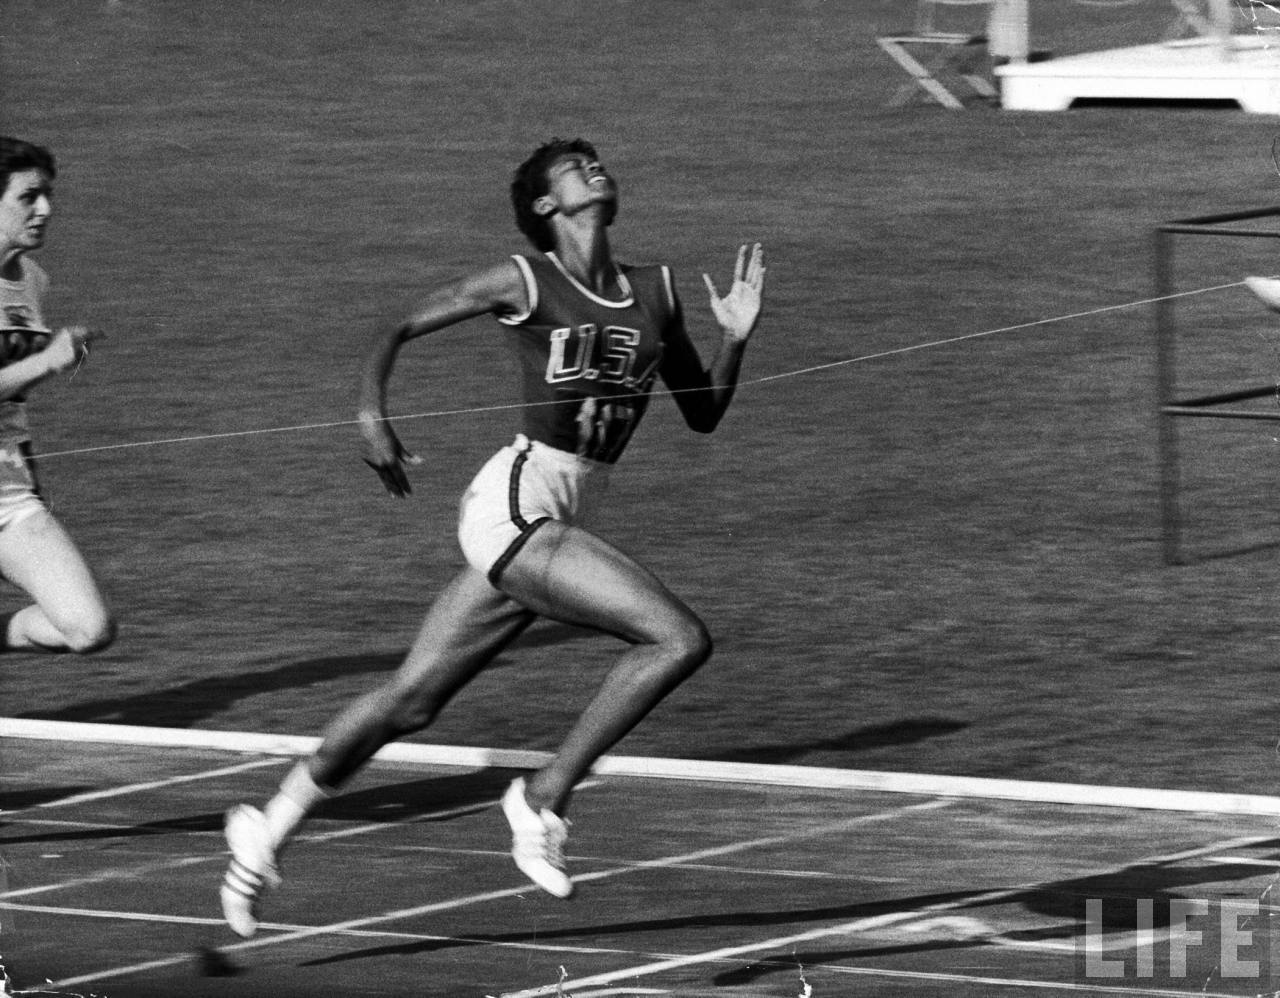 Wilma Rudolph wins 100 Yard Dash at the 1960 Rome Olympics